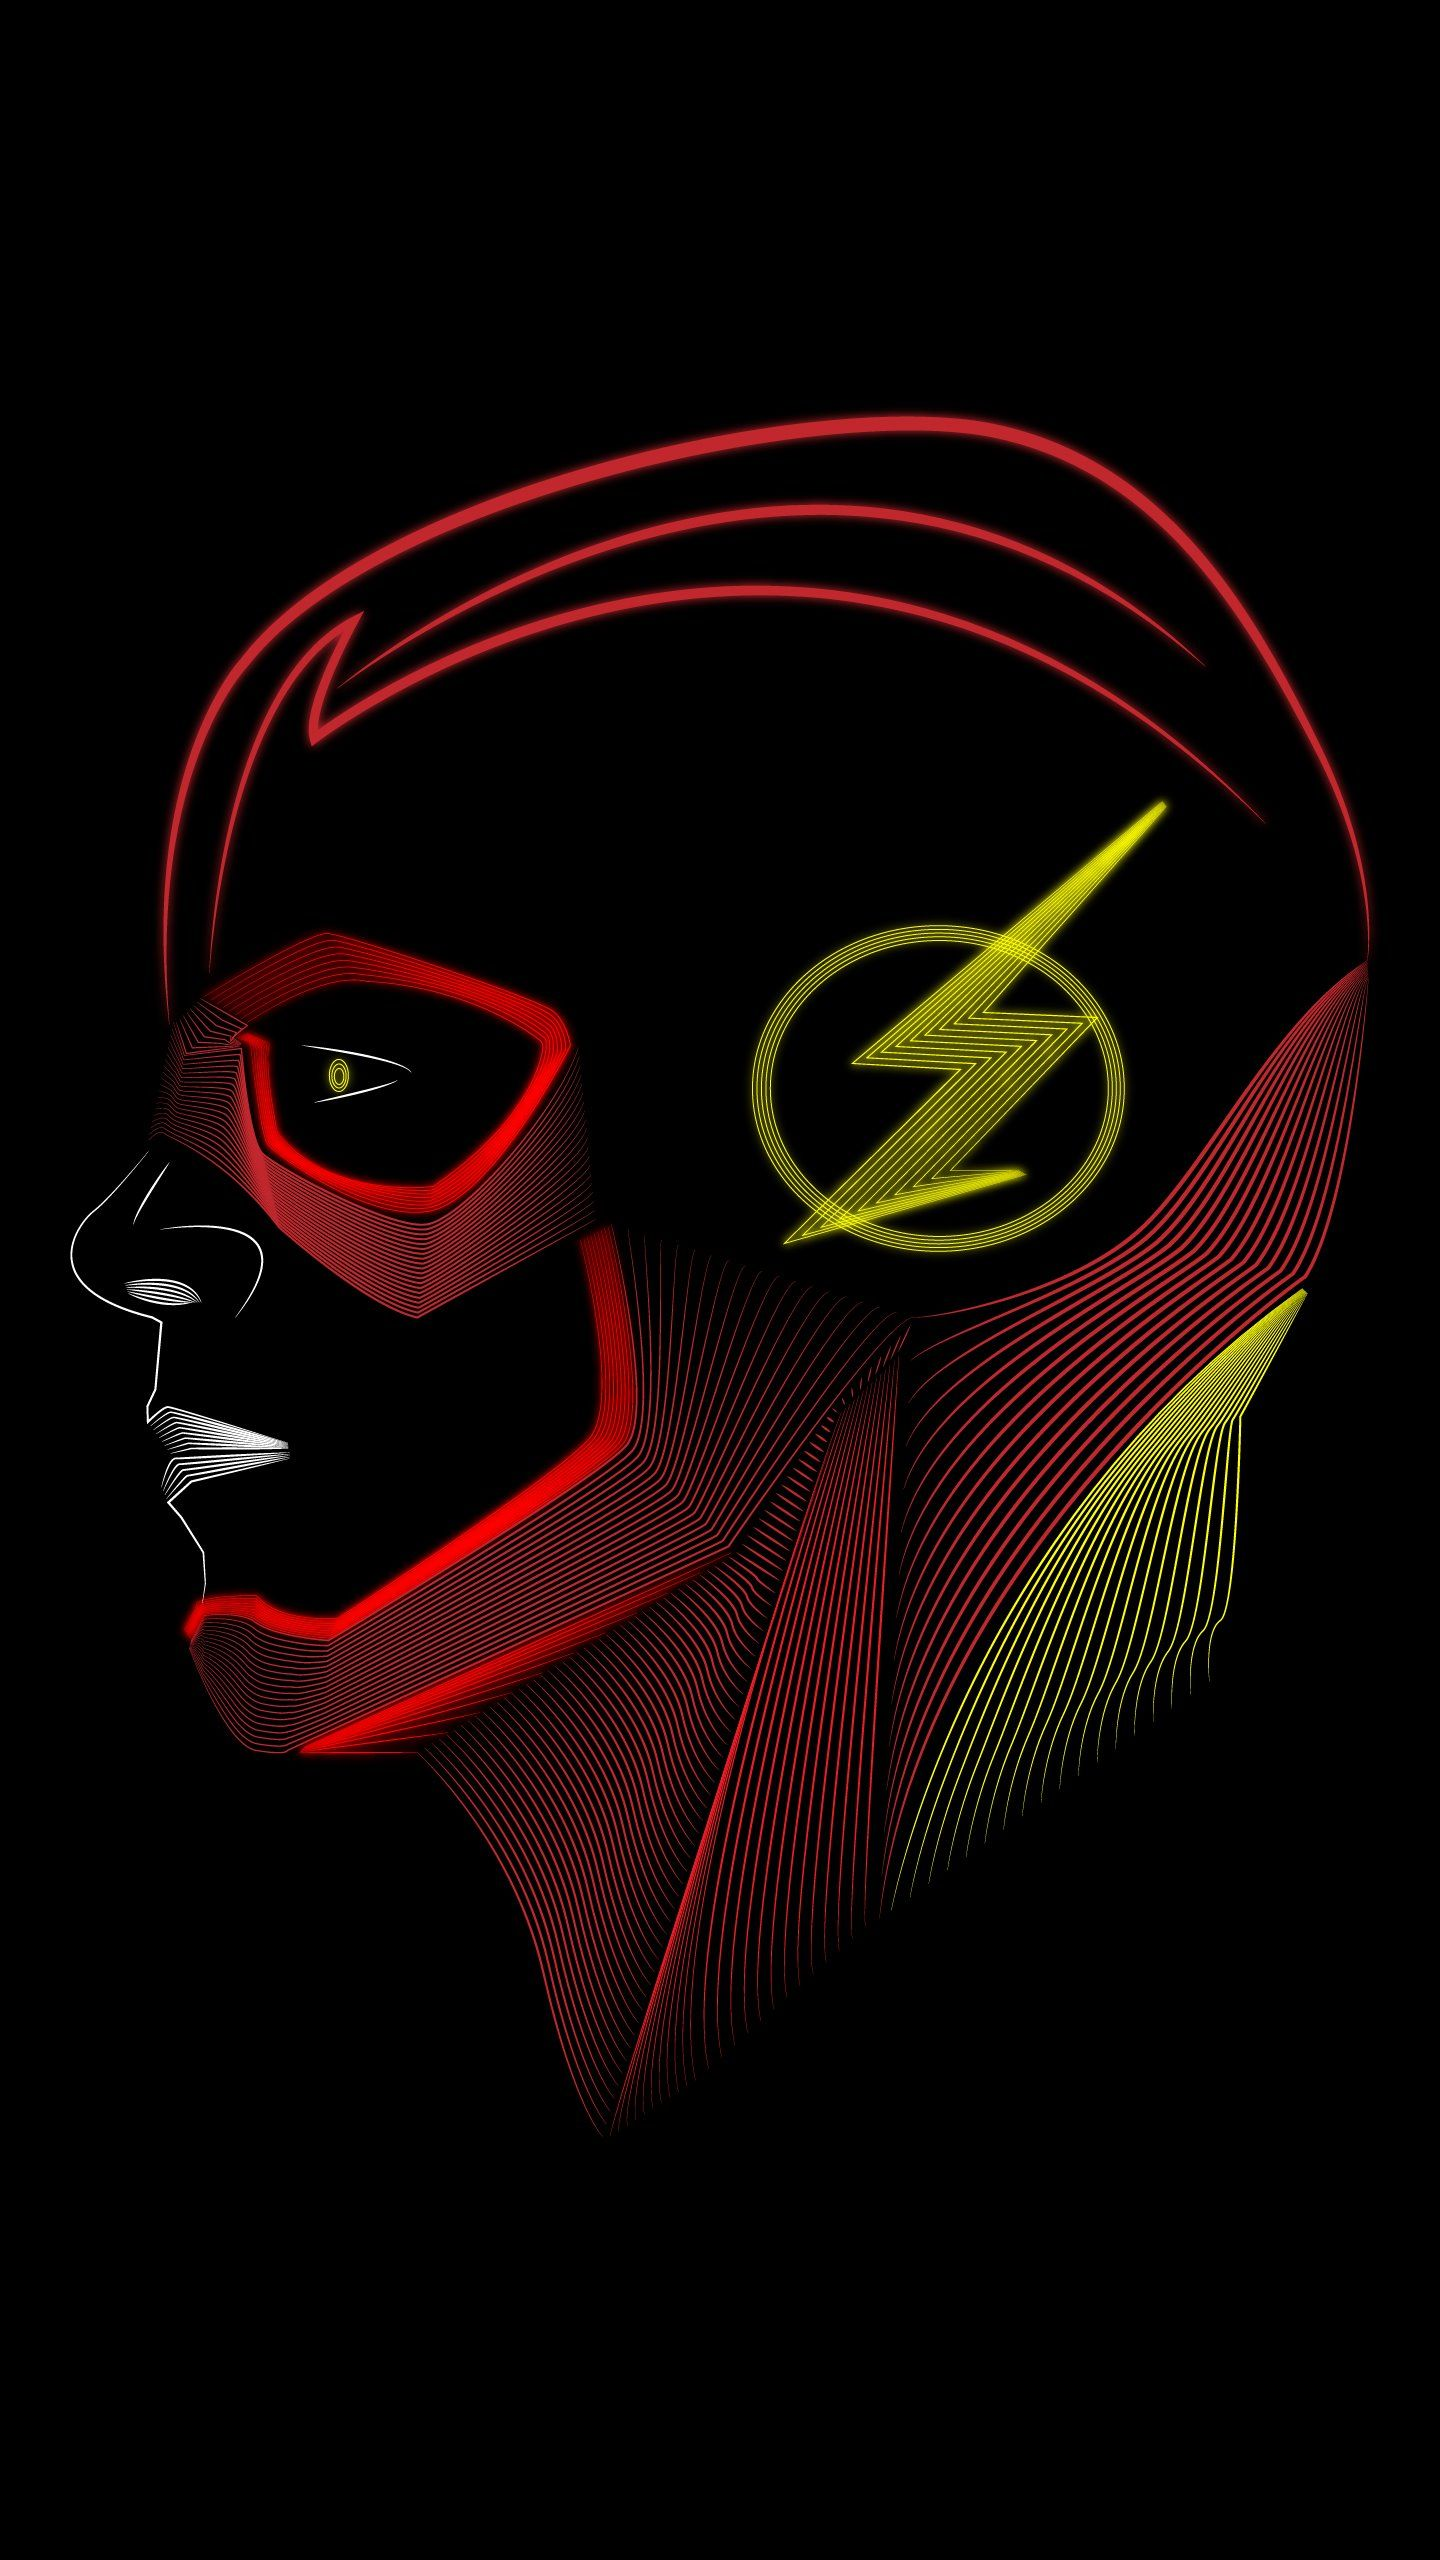 flash hd wallpaper, the flash superhero pics